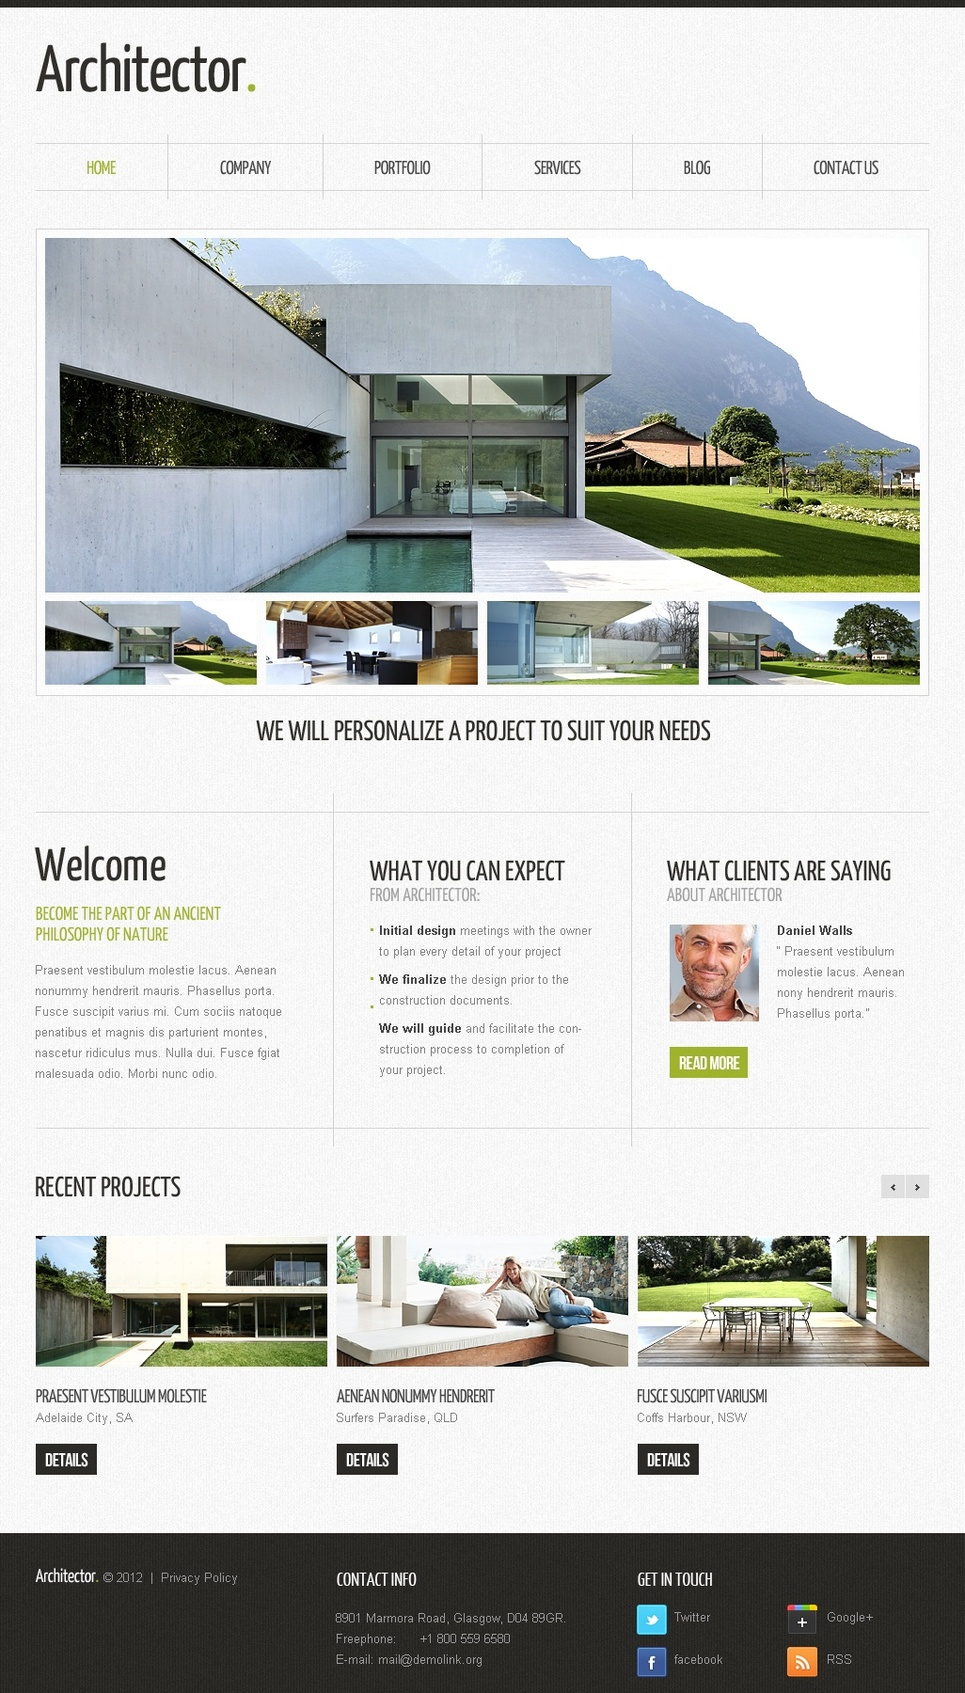 Architecture and Real Estate Template and Image Gallery - image